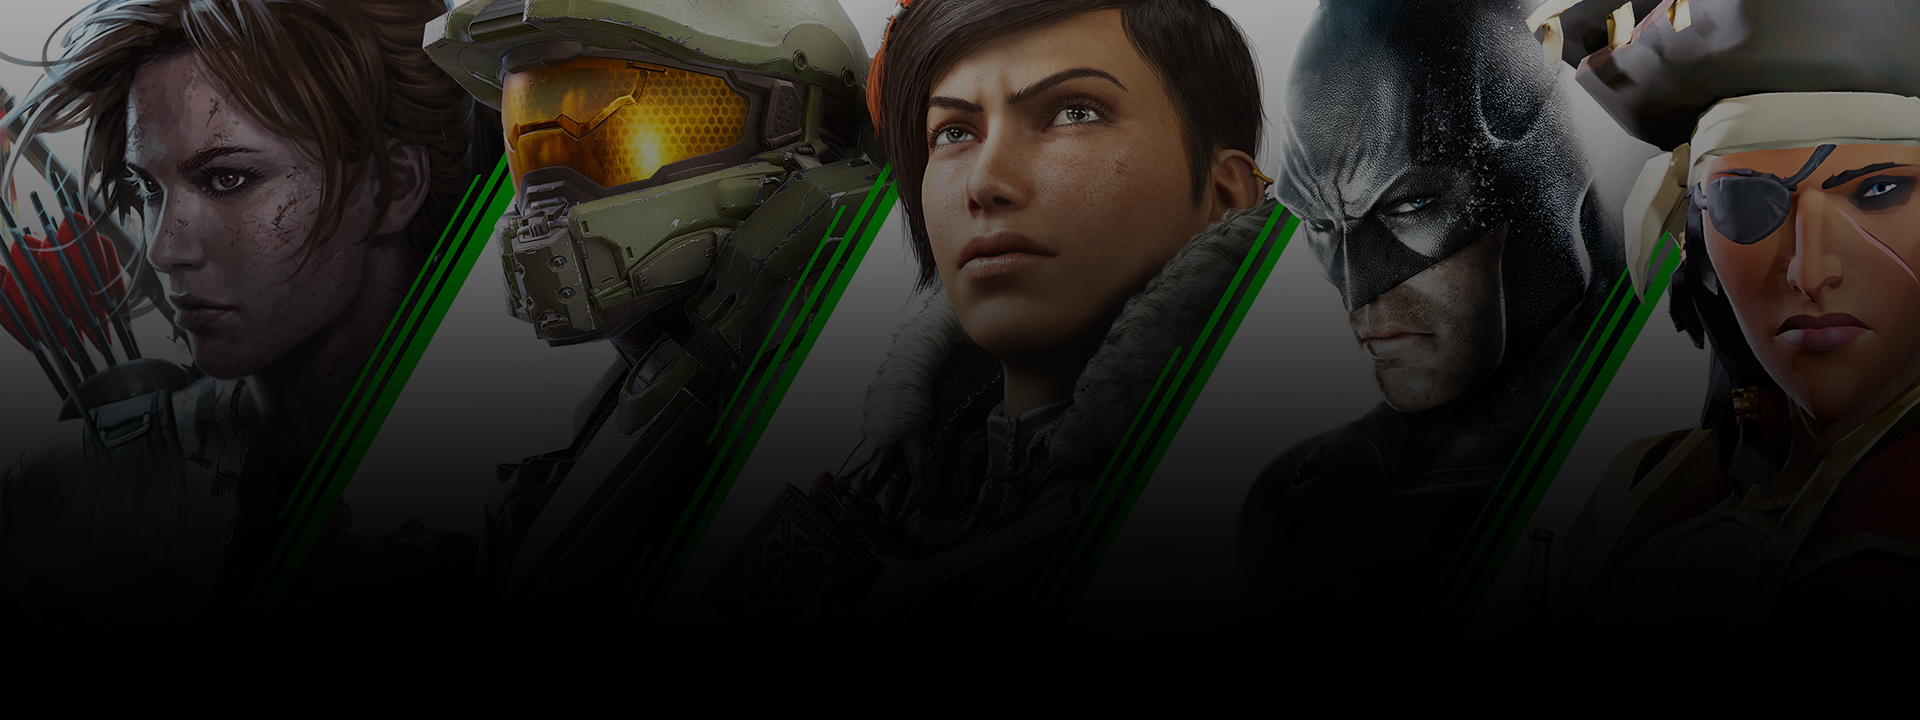 A lockup of characters whose games are available on Xbox Game Pass, including Lara Croft, Master Chief, and more